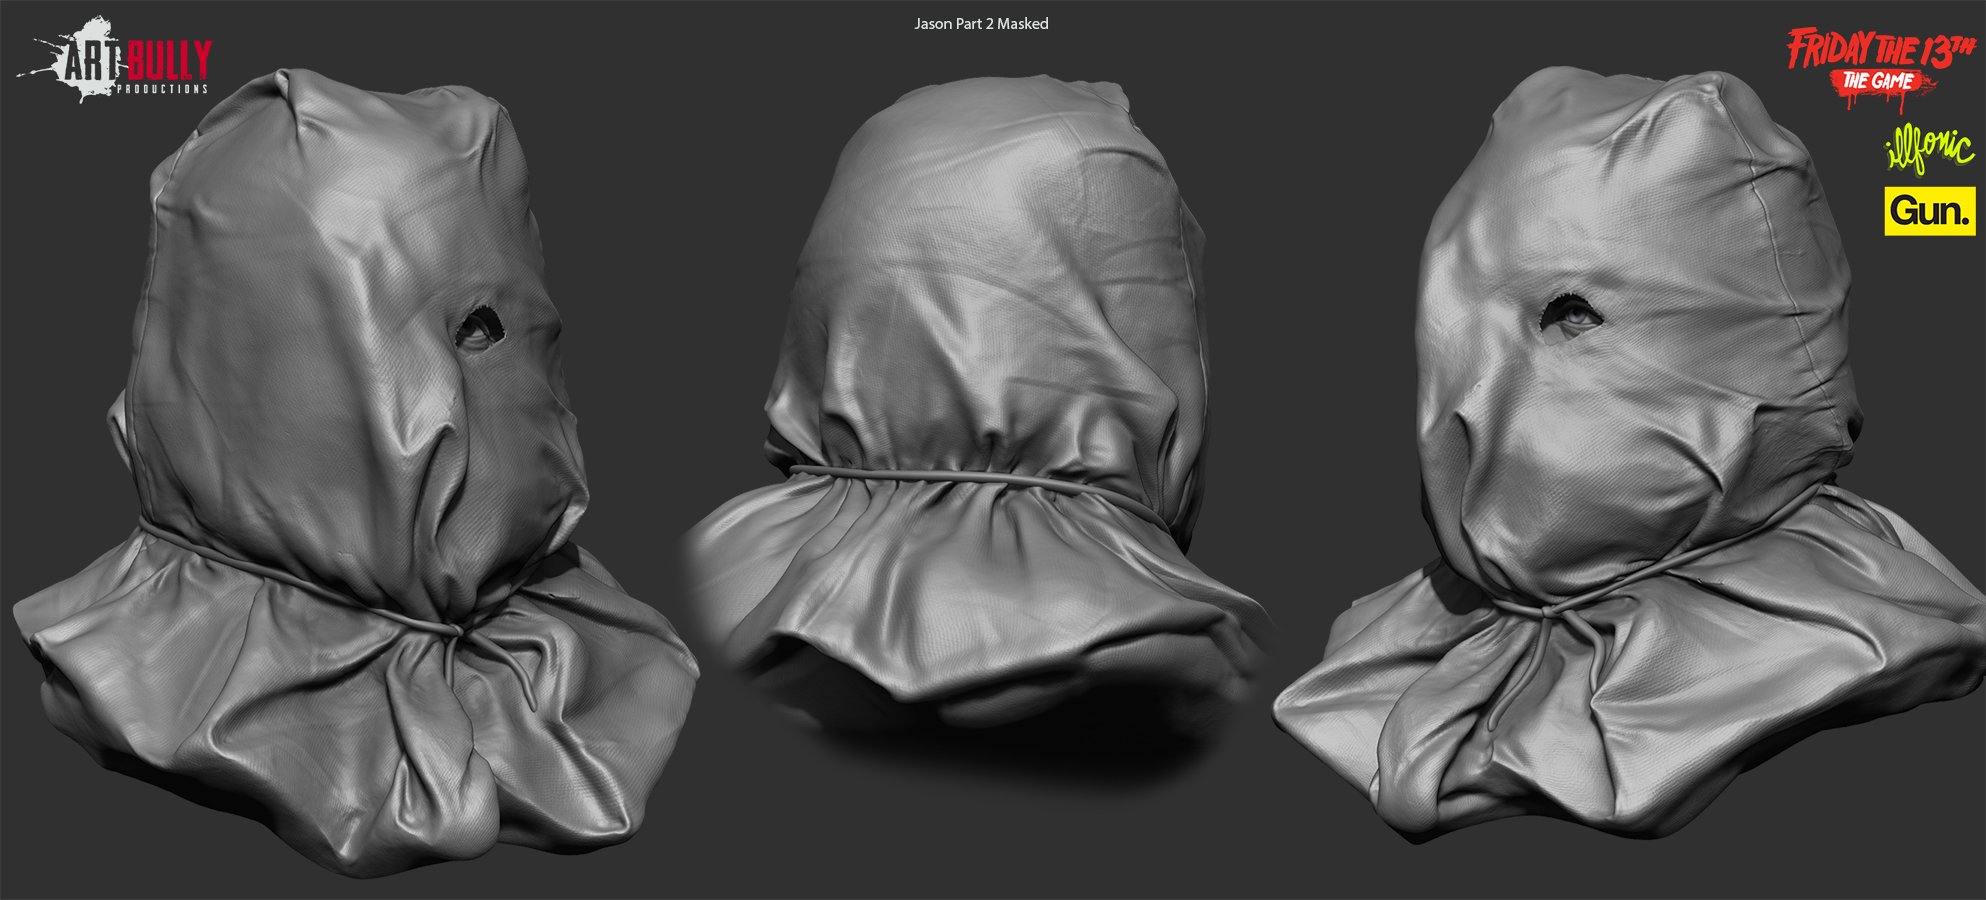 Jason_Part2_Highpoly_Masked_CU_01.png